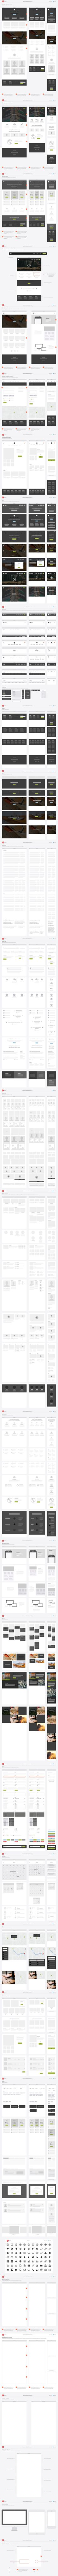 A full preview of our Responsive Website Wireframe Kit with 30 pages of content blocks, website elements, icons, wireframe examples and templates. http://uxkits.com/products/responsive-website-wireframe-kit